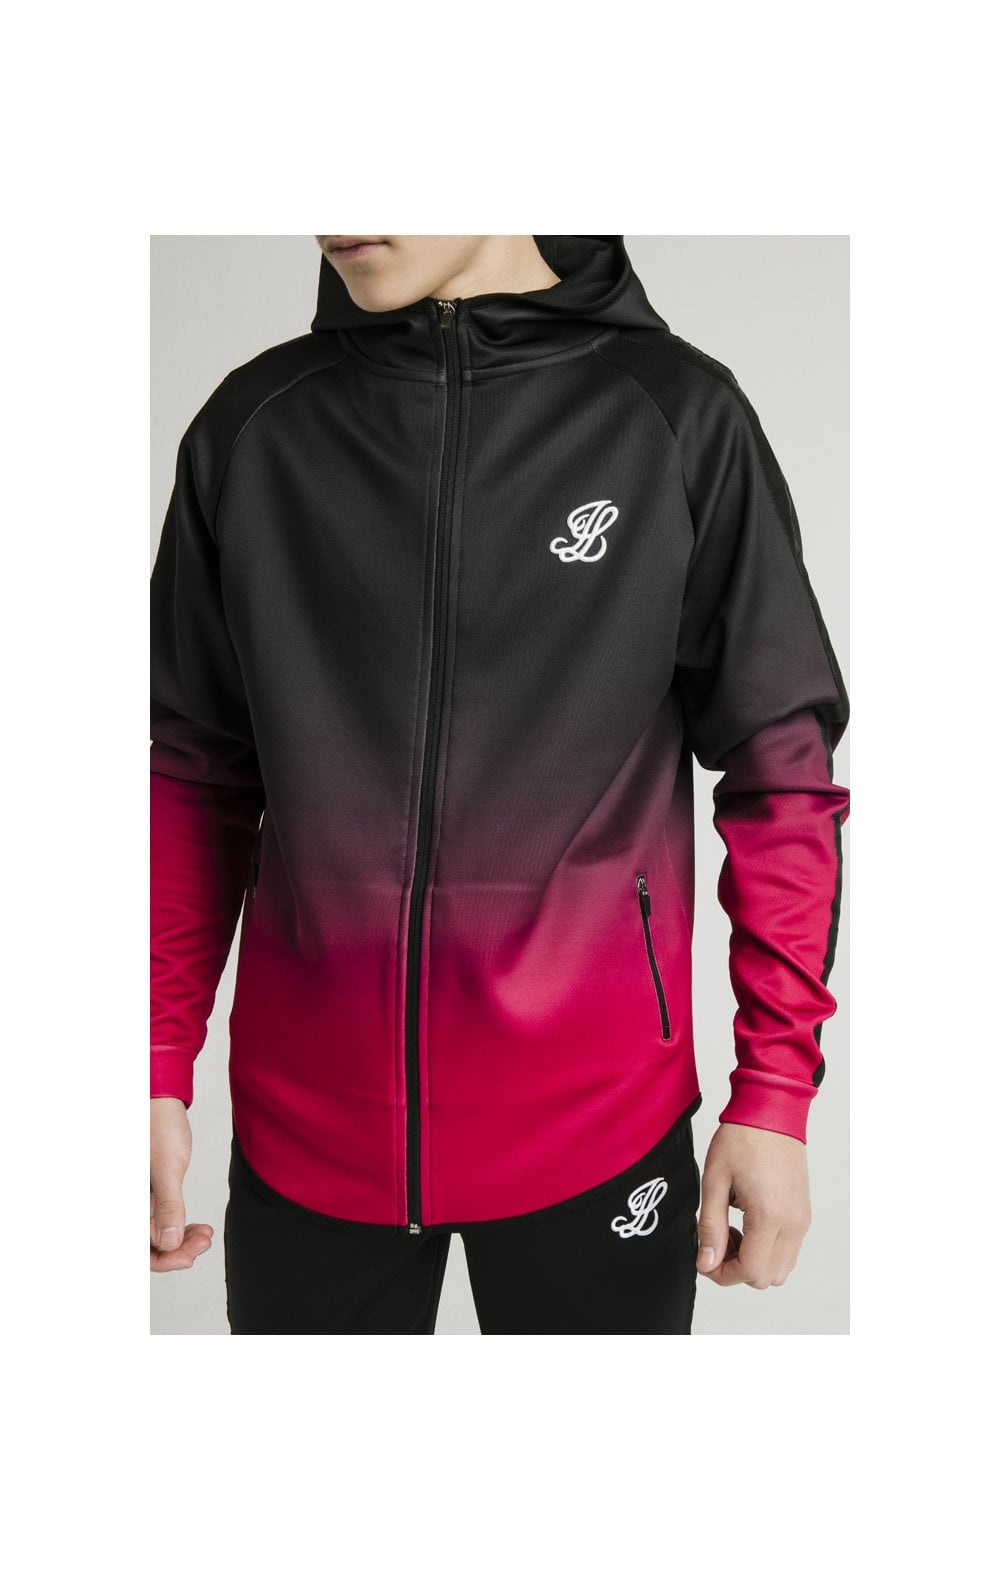 Load image into Gallery viewer, Illusive London Athlete Zip Through Fade Hoodie - Black & Pink